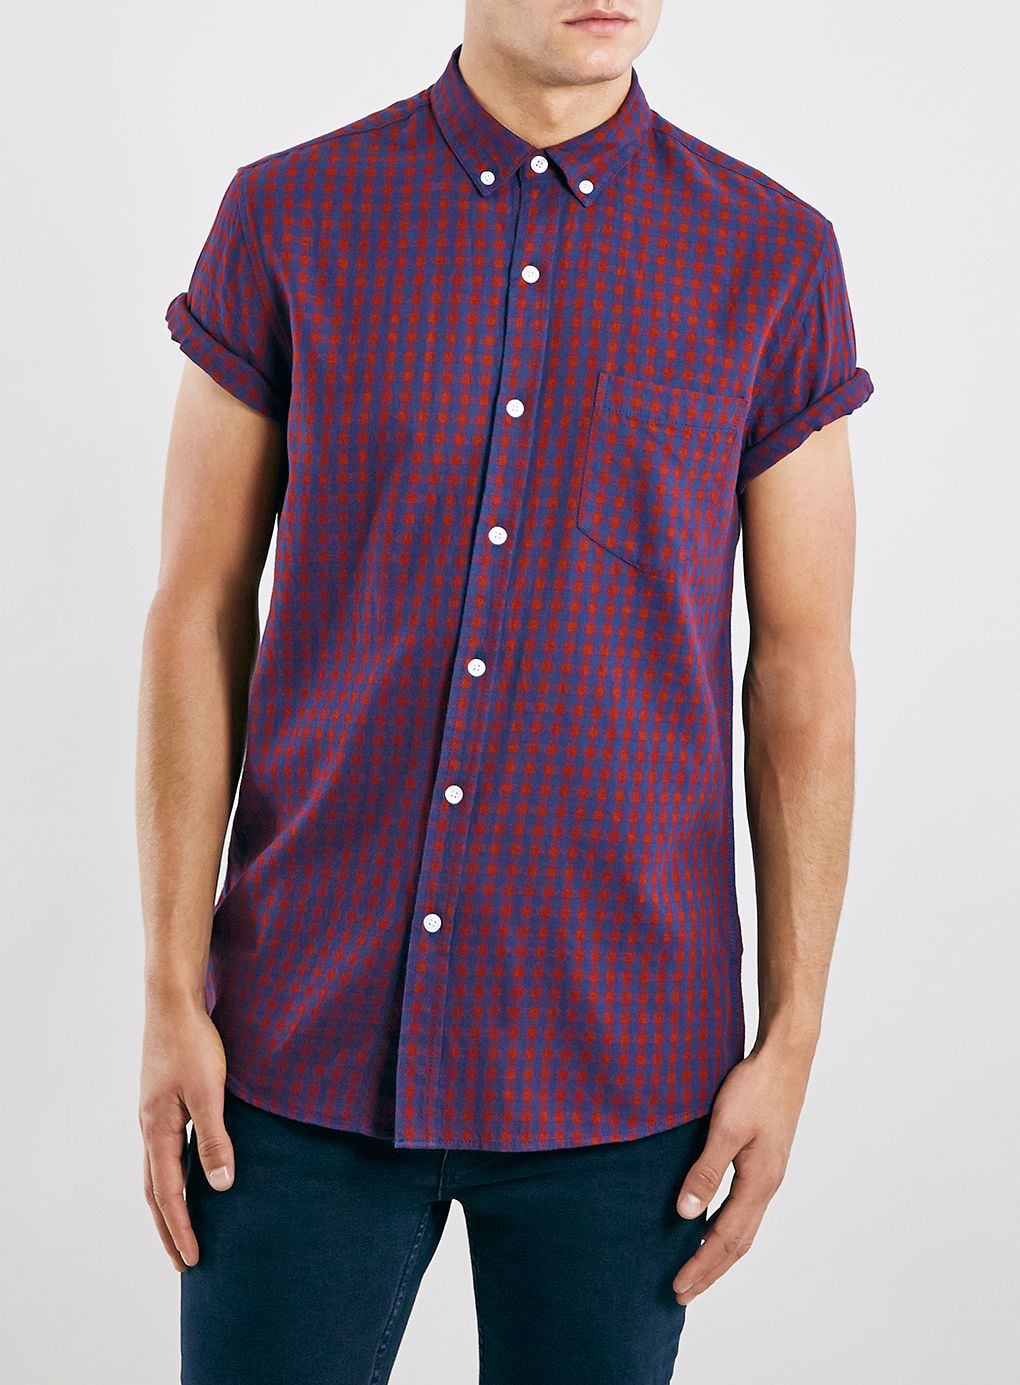 Take casual style to the next level with our Men's Short Sleeve Shirts. Their breathable and lightweight fabric is comfortable, and the short sleeves keep you cool. With styles ranging from plaid shirts to chambray shirts, these short sleeve tops are a staple in men's fashion.